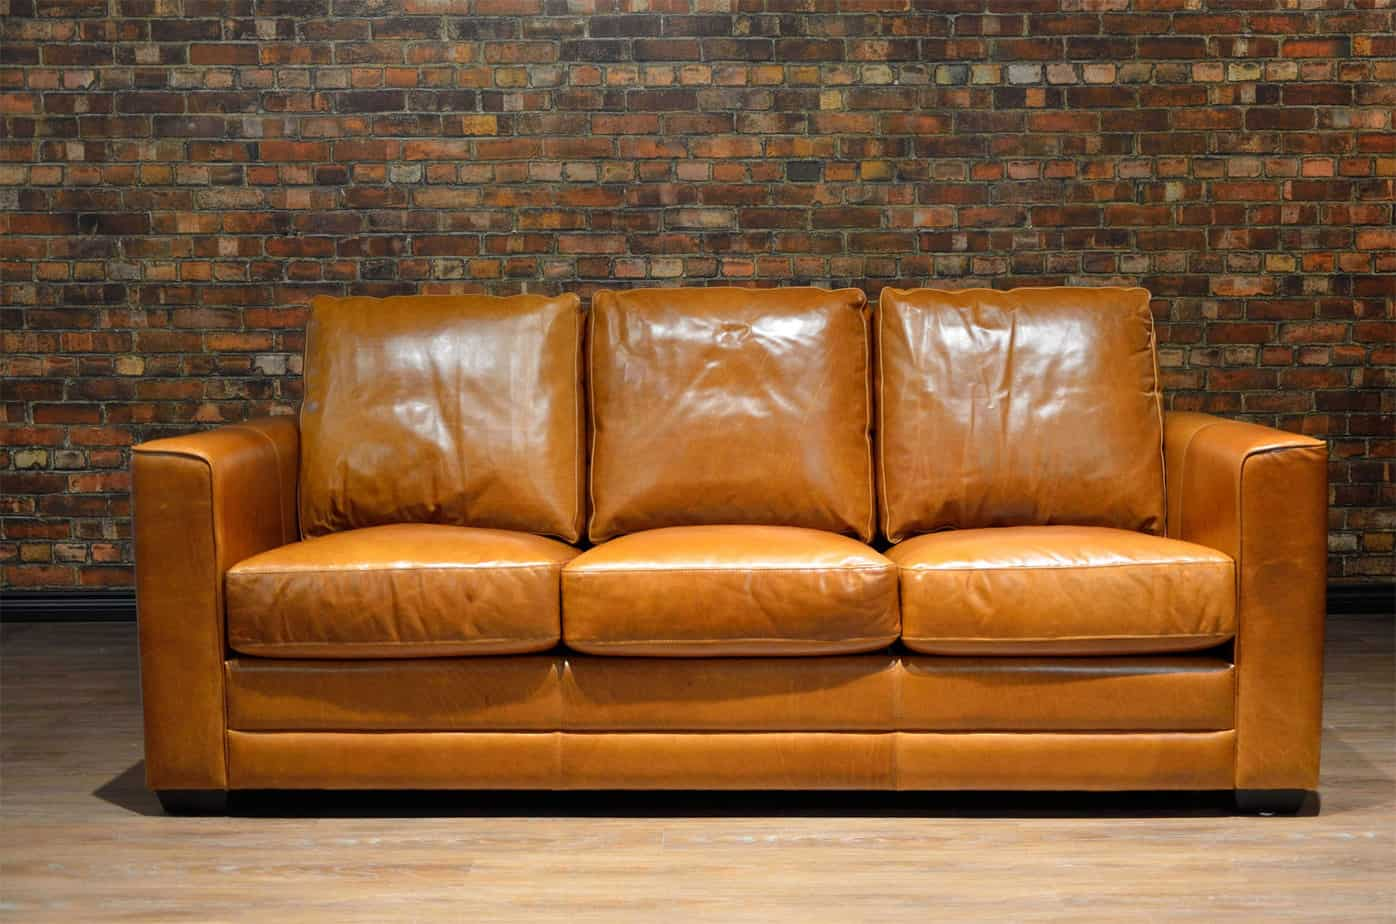 The Torino Regular Leather Sofa